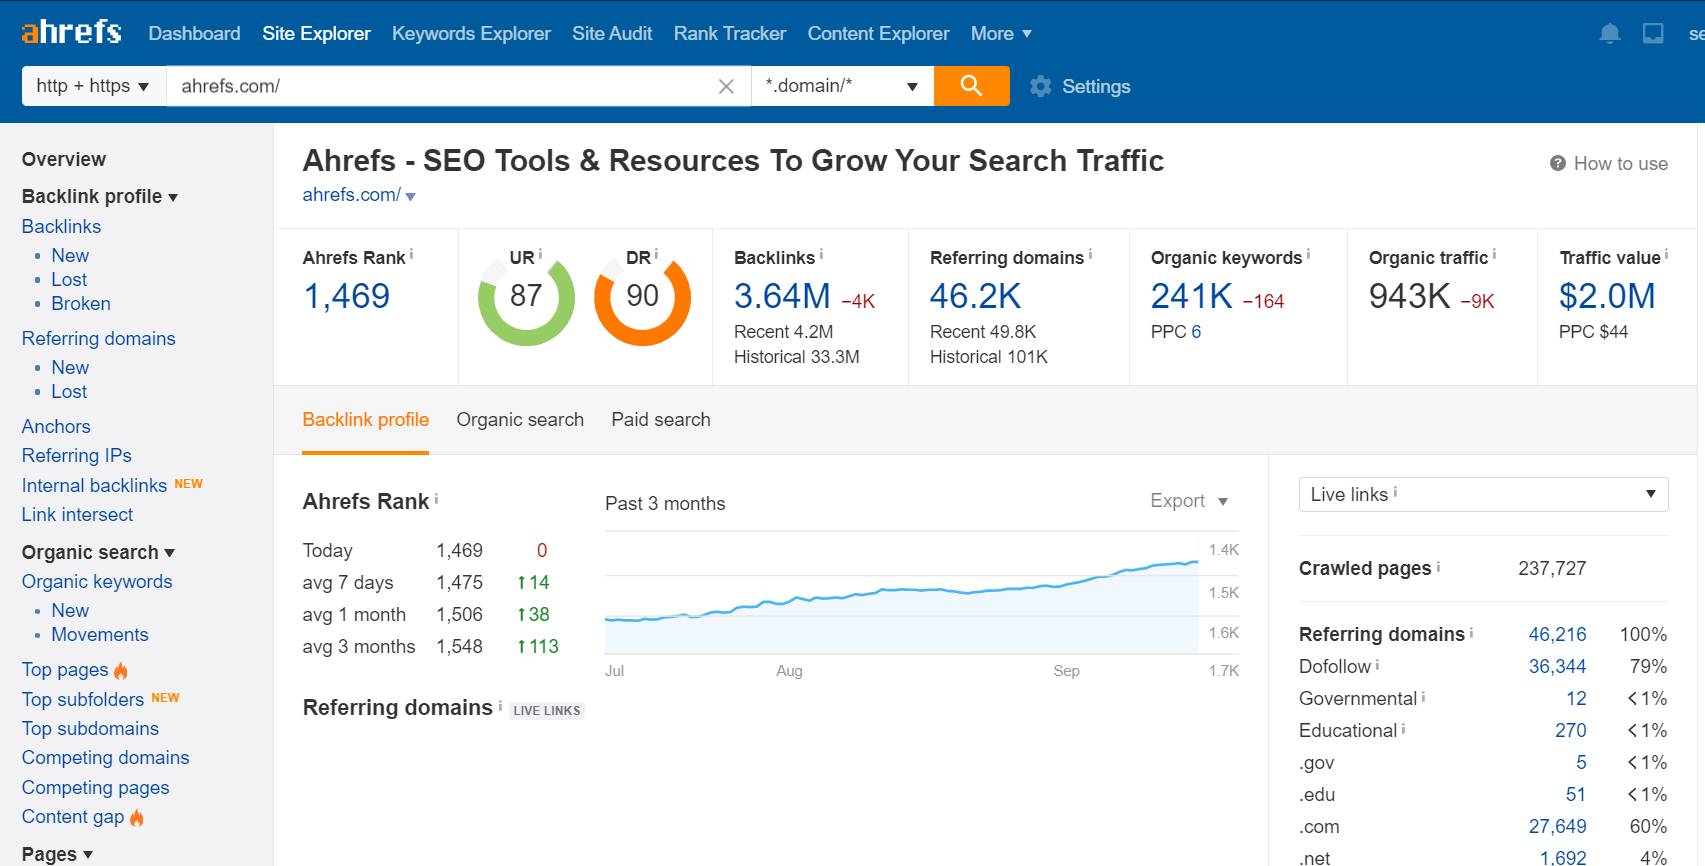 Site Audit Tool Overview Report - Ahrefs Webmaster Tools